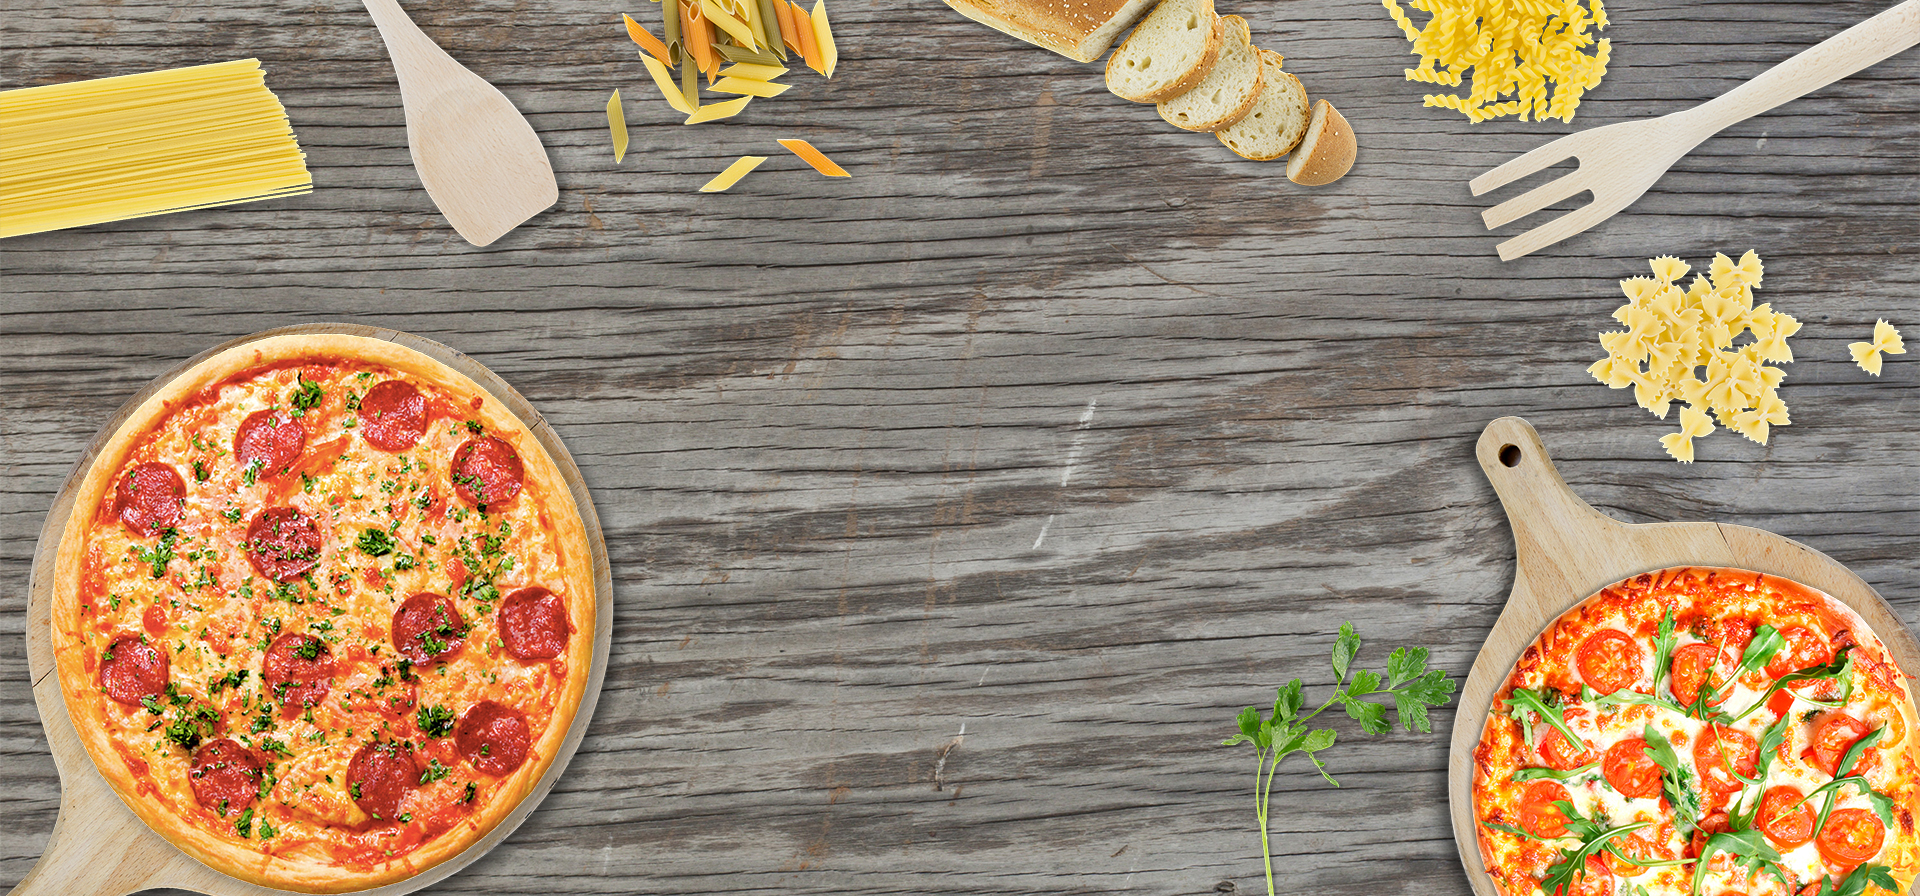 Pizza Background, Pizza, Food, Board Background Image for ...